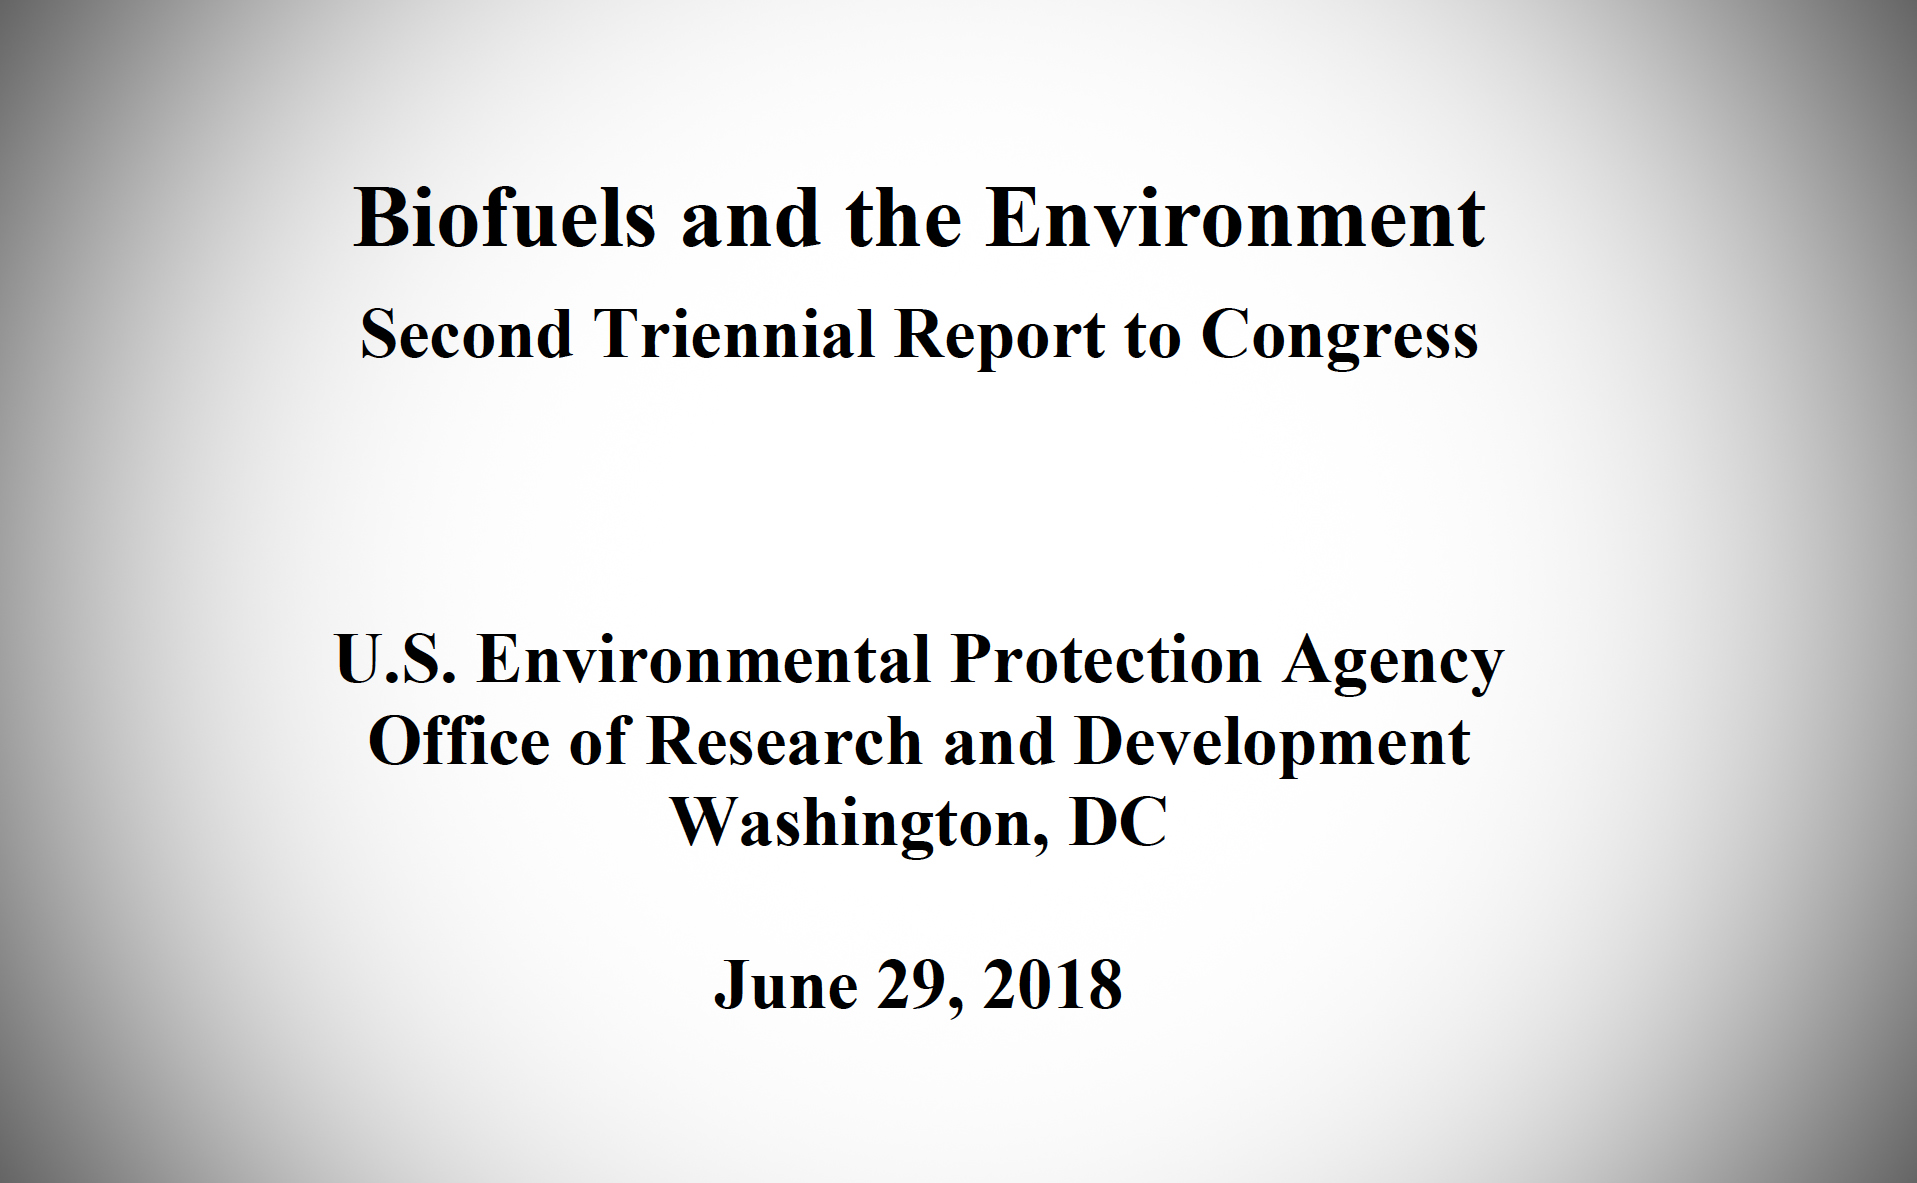 This is the cover page to the EPA's 2018 report that found that ethanol production associated with large-scale cultivation of corn and soybeans resulted in an overall negative environmental impact.